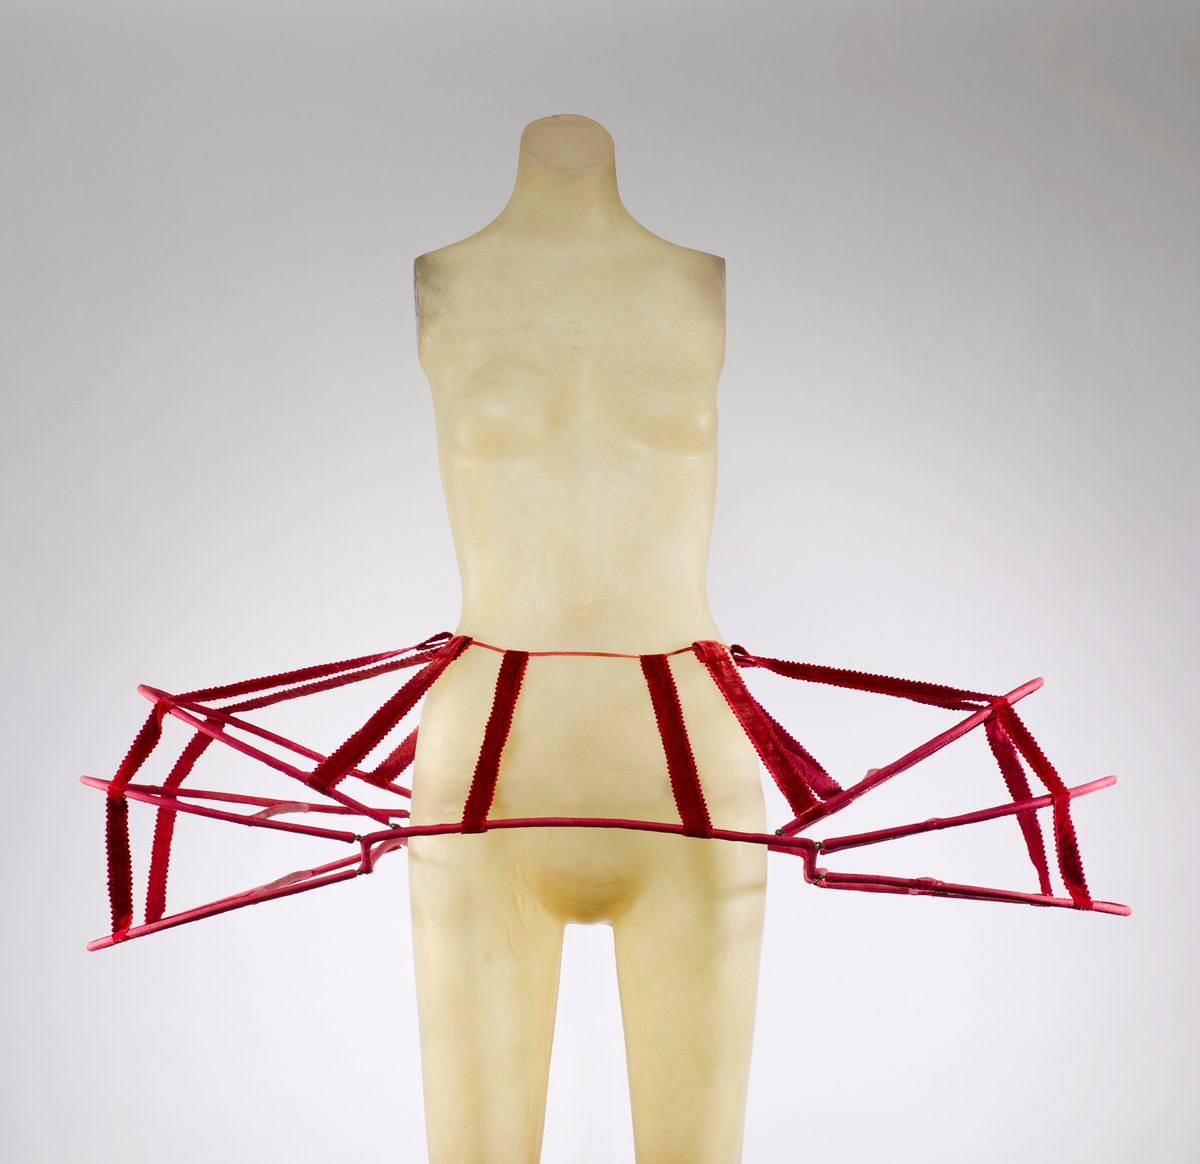 A pair of panniers to add shape to a dress. It looks very architectural.